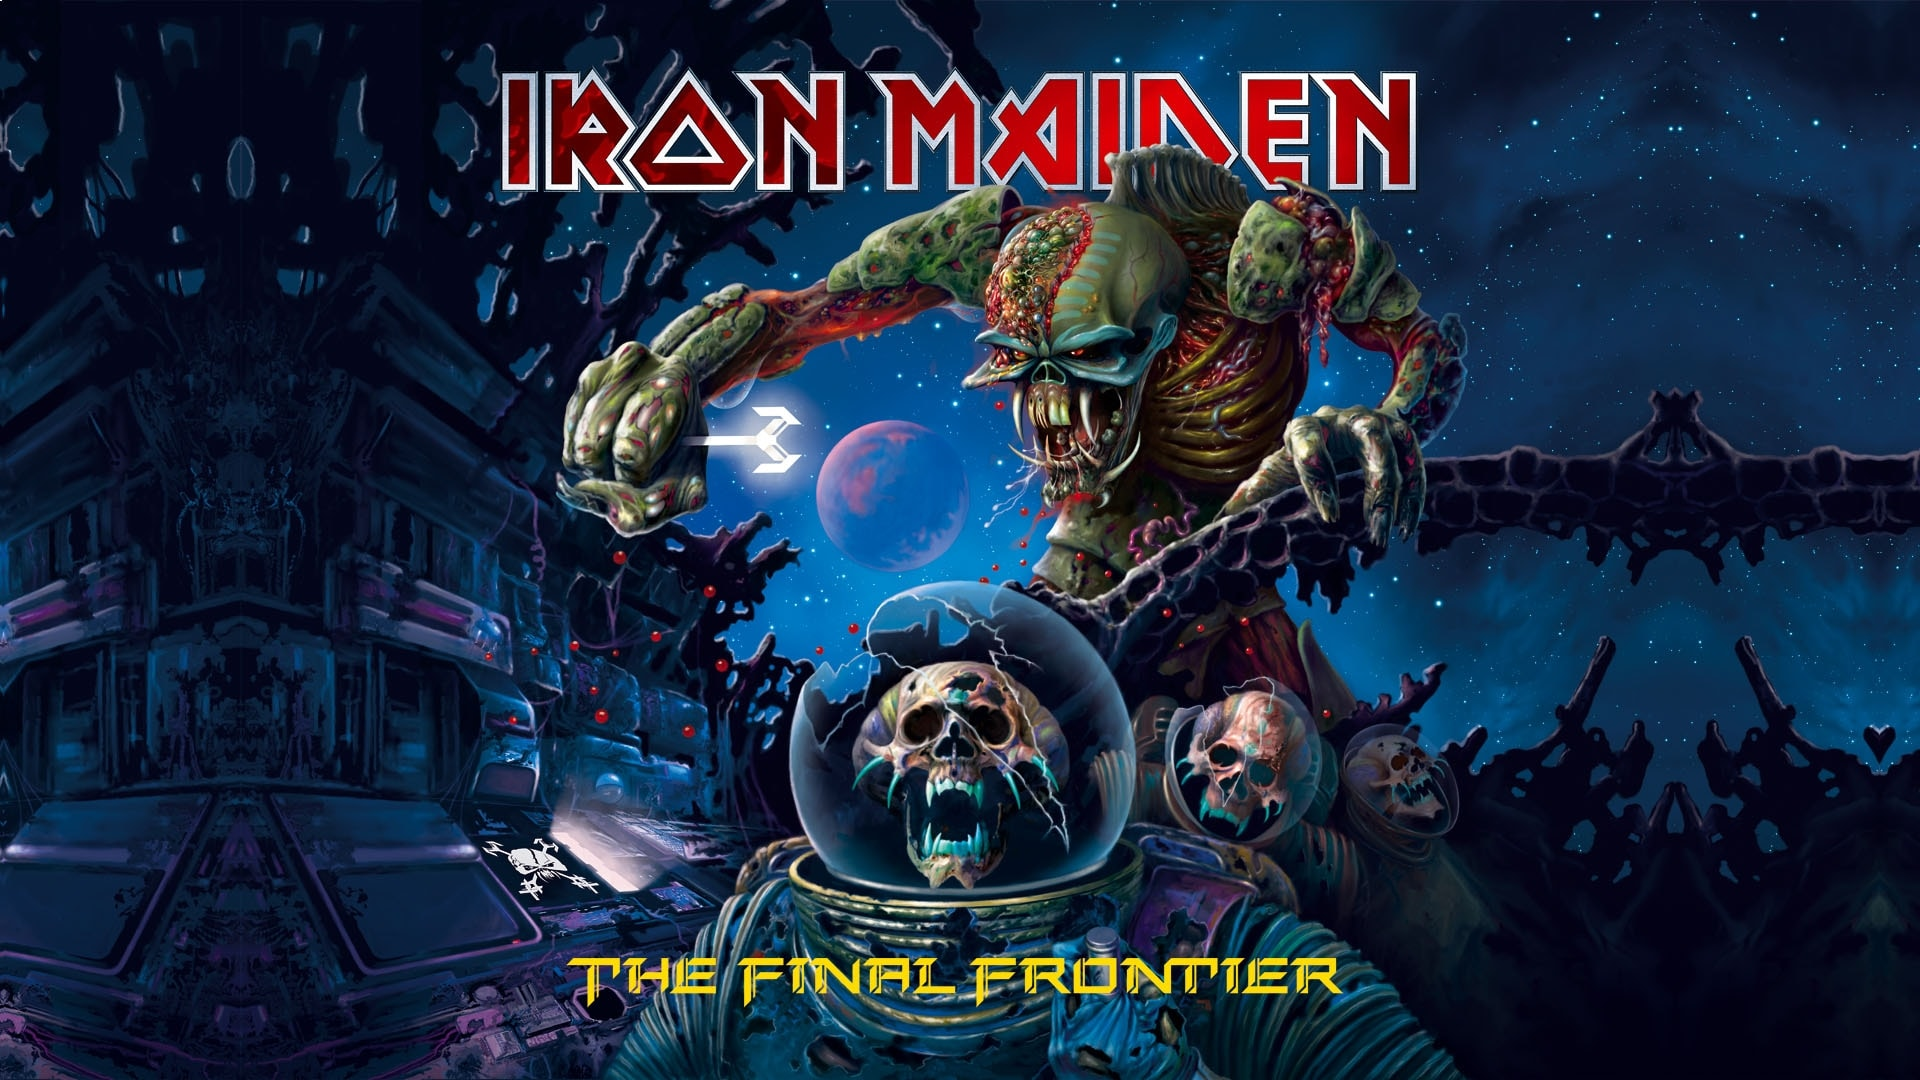 Iron Maiden Hd Wallpapers 7wallpapers Net